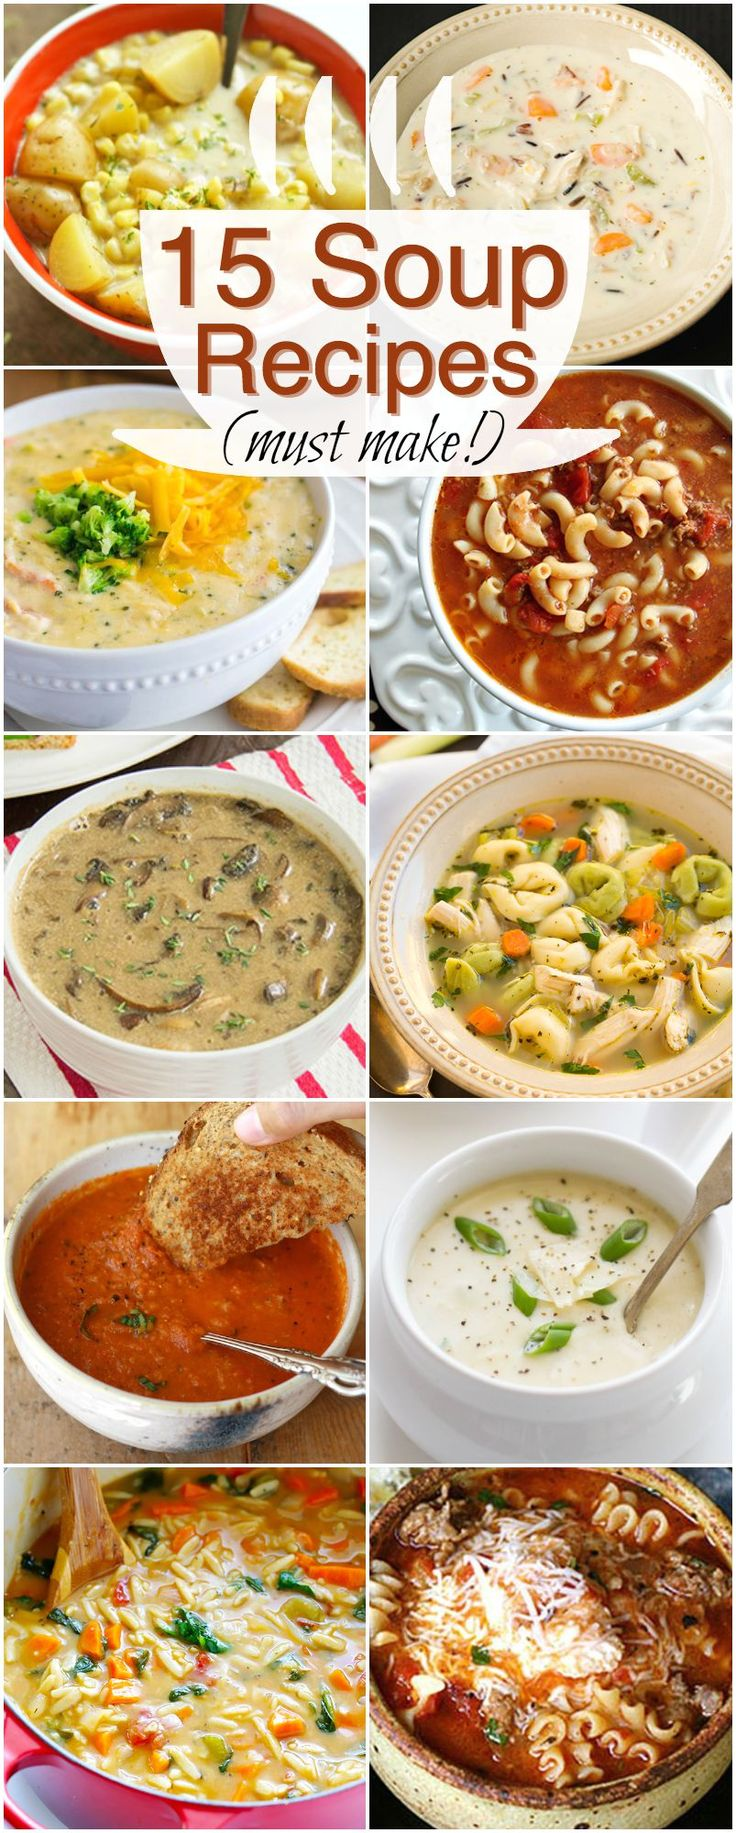 132905 best main course meals side dishes images on pinterest 15 absolutely delicious winter soup recipes forumfinder Images